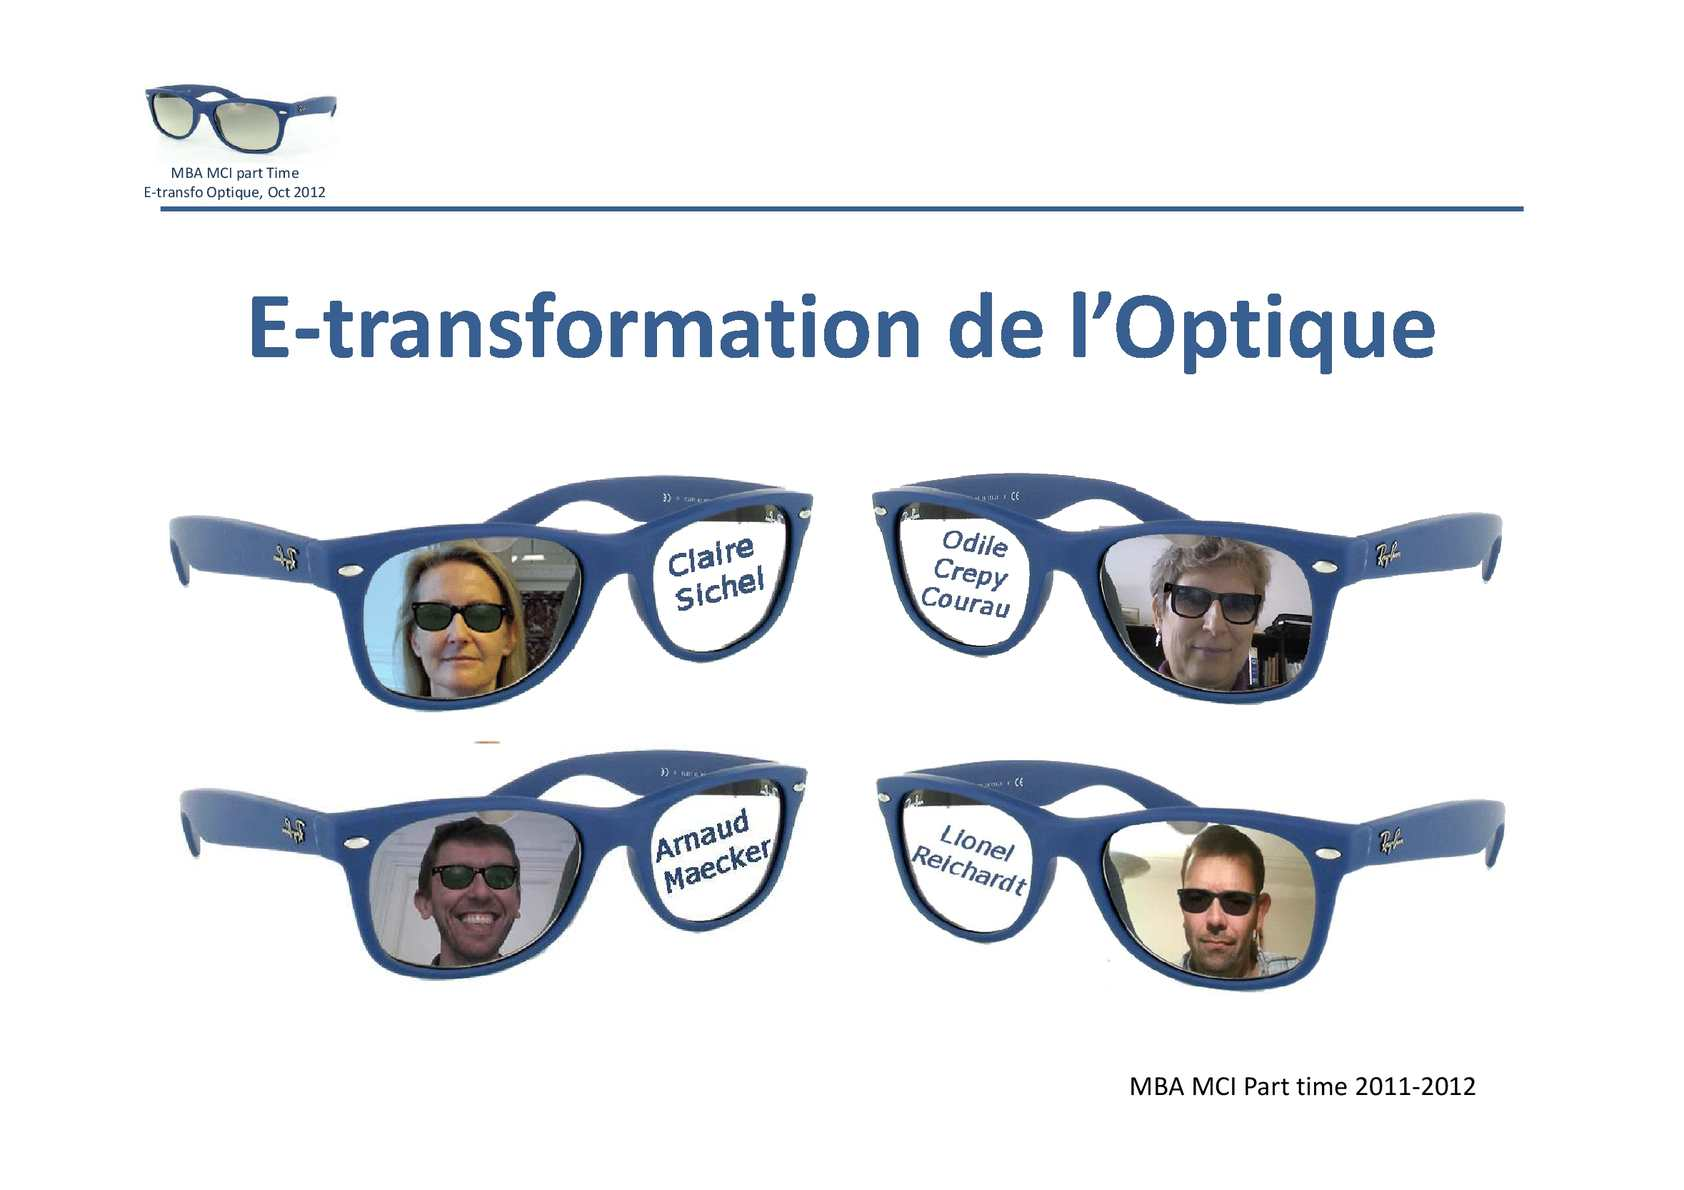 10f35287398 Calaméo - PRESENTATION E TRANSFORMATION OPTIQUE - OCTOBRE 2012 -MBA MCI